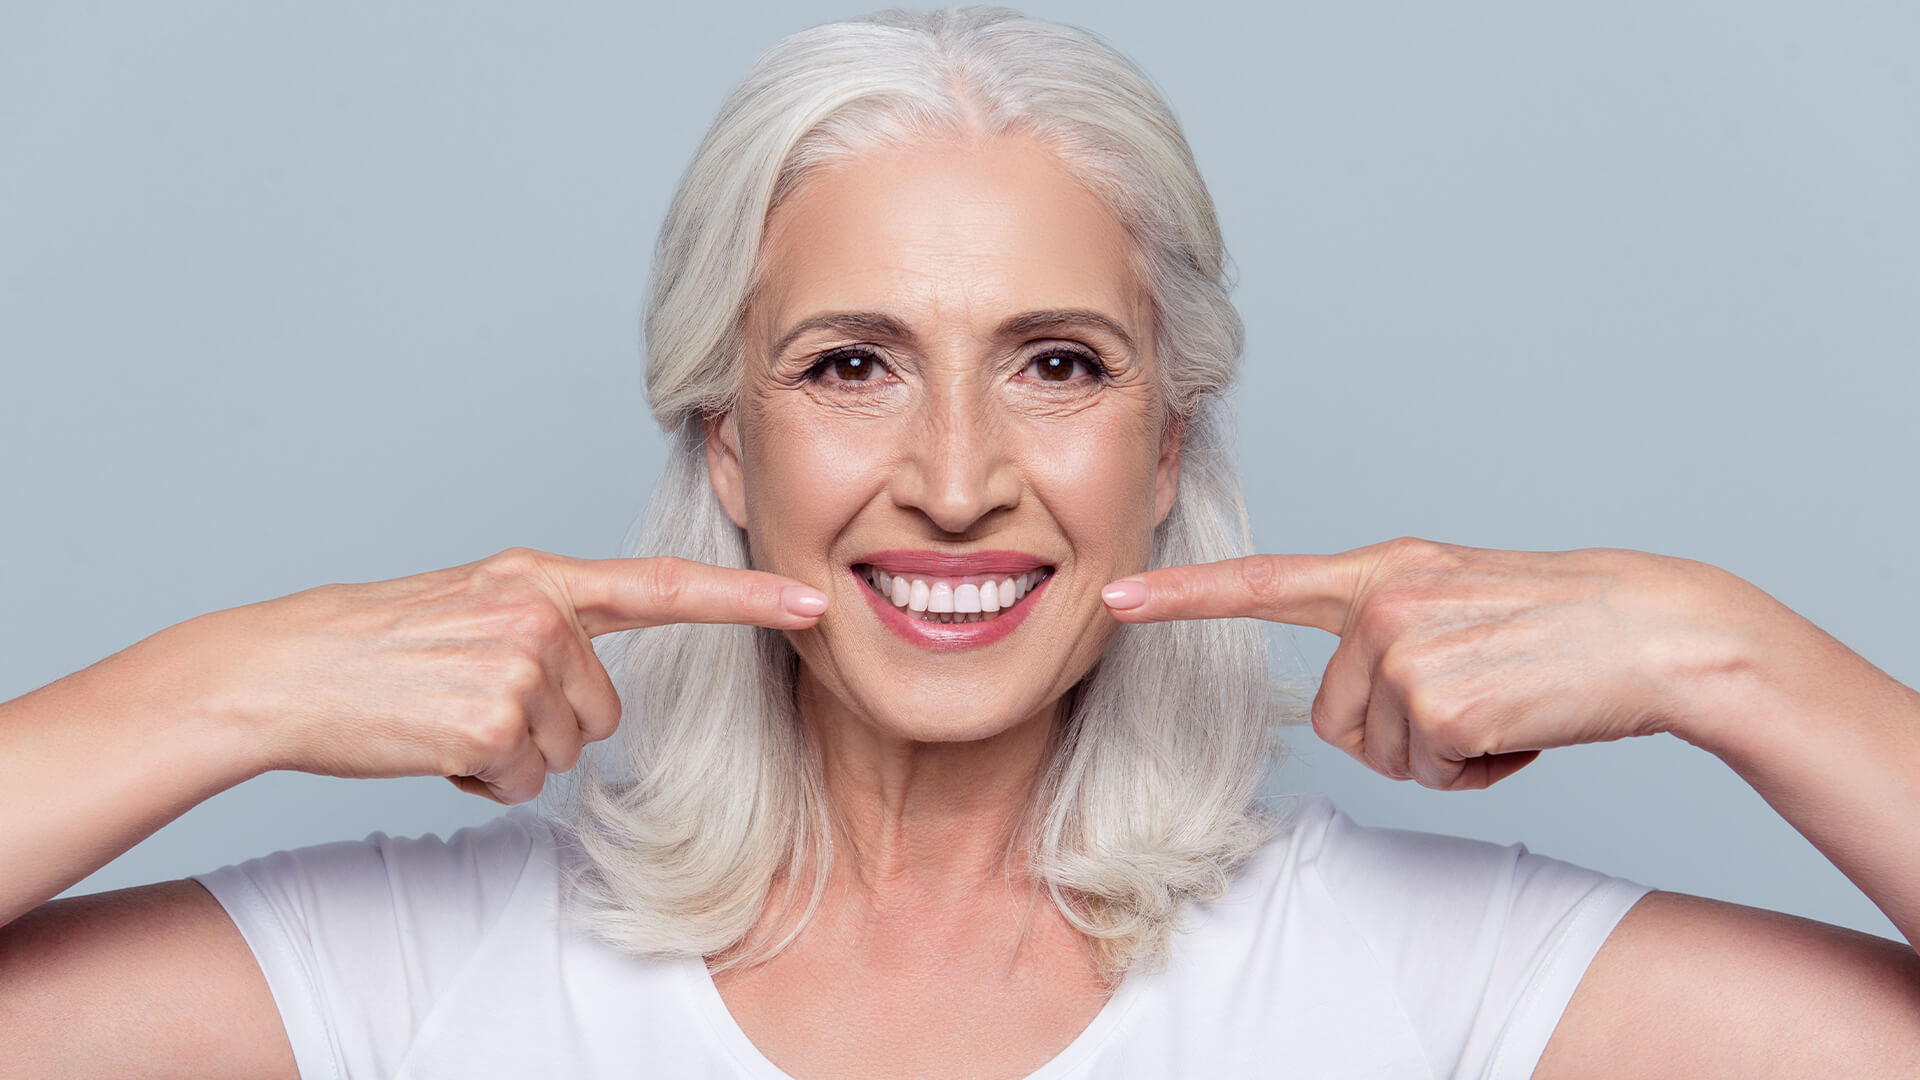 Top Tips to Look After Your Dental Health as You Age